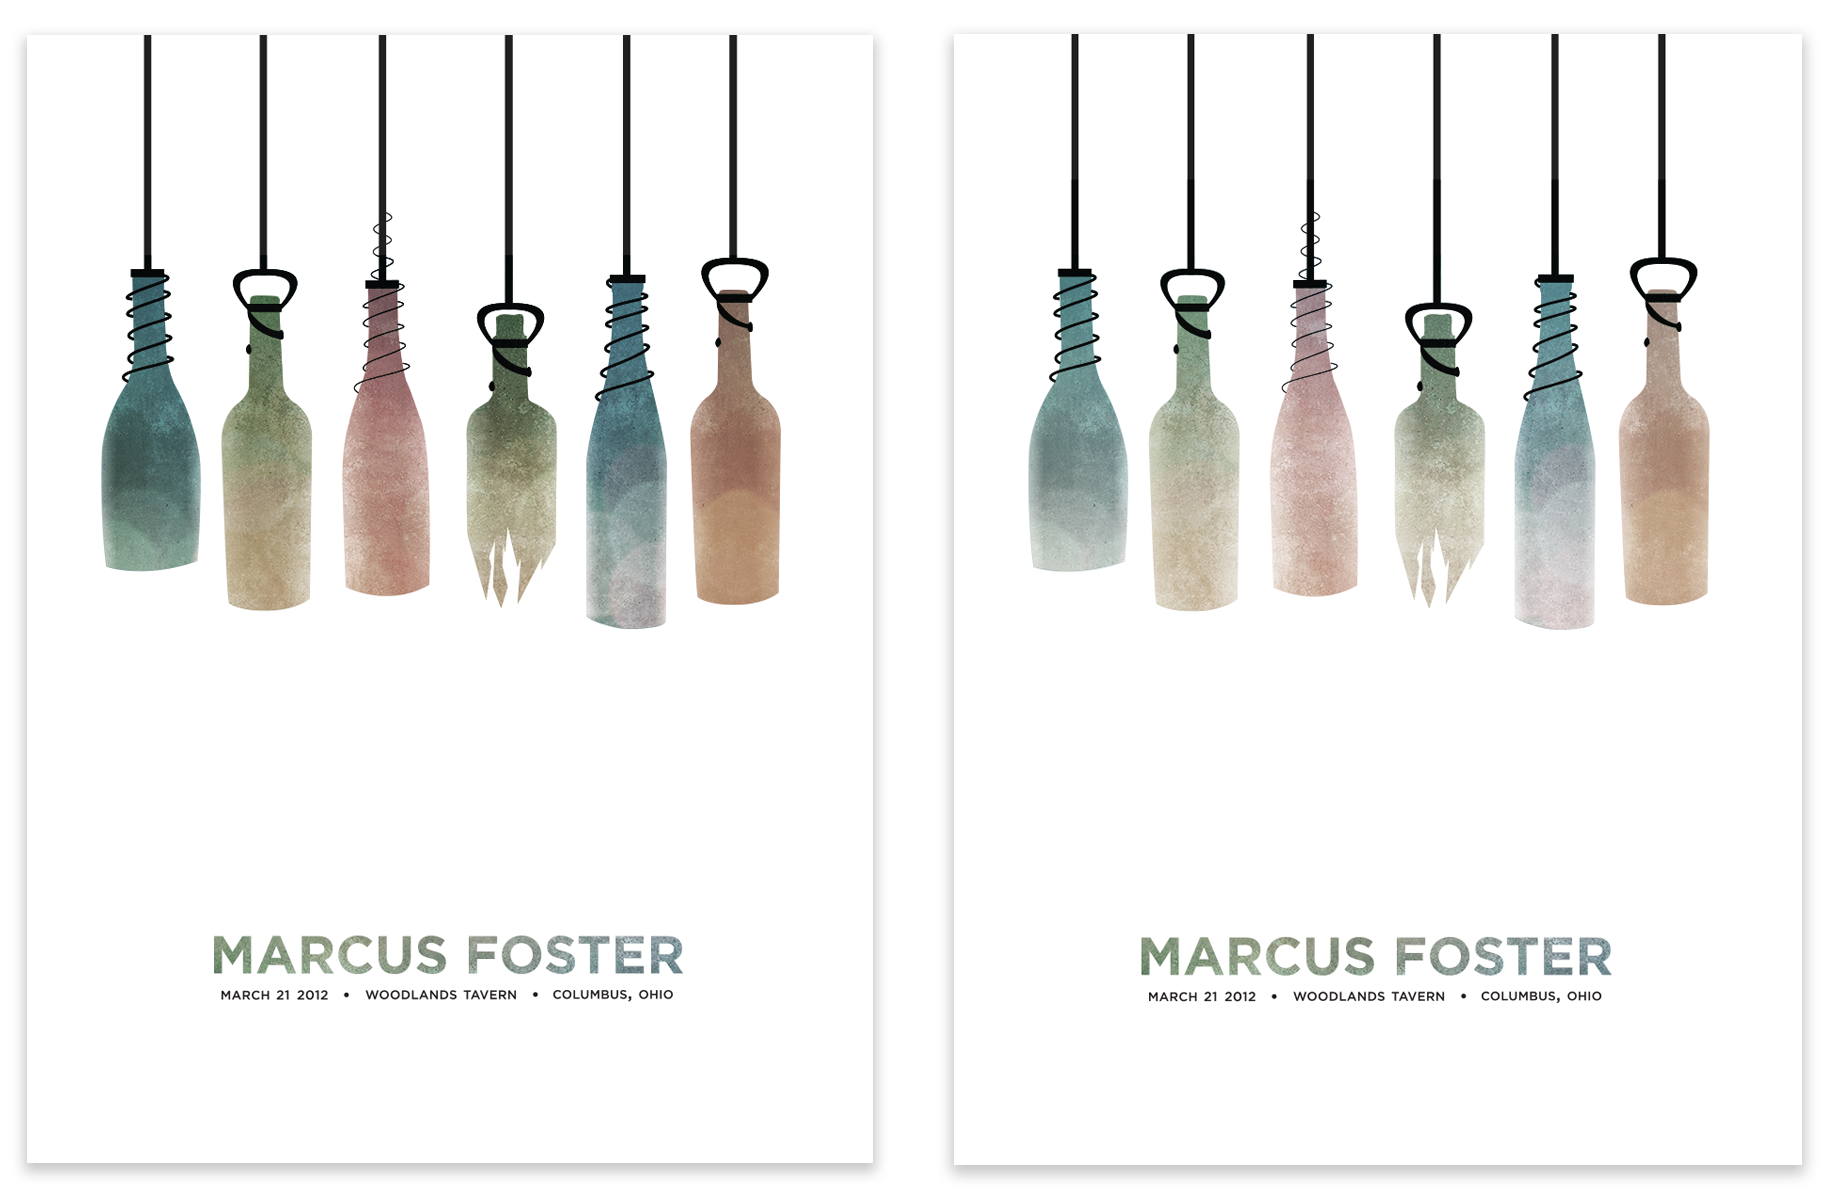 COMPLETE: Marcus Foster Gig Poster - image 12 - student project